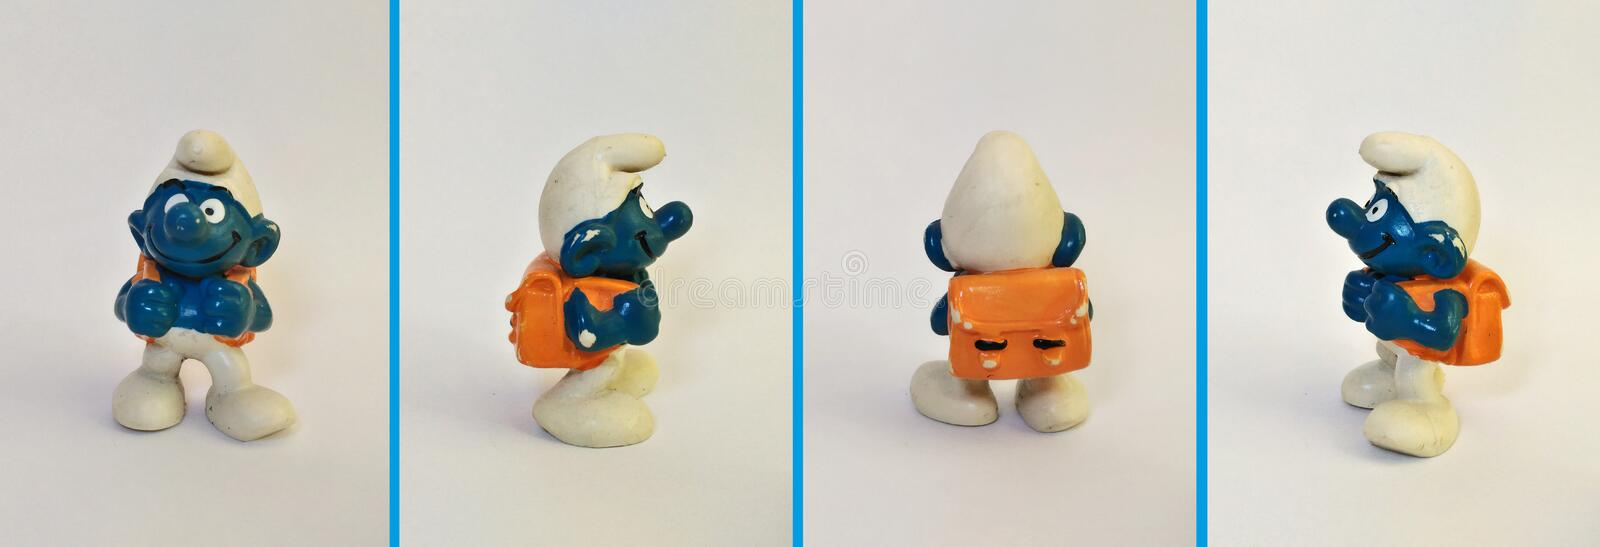 Collectible leksaker: Skolpojke Smurf! royaltyfria bilder